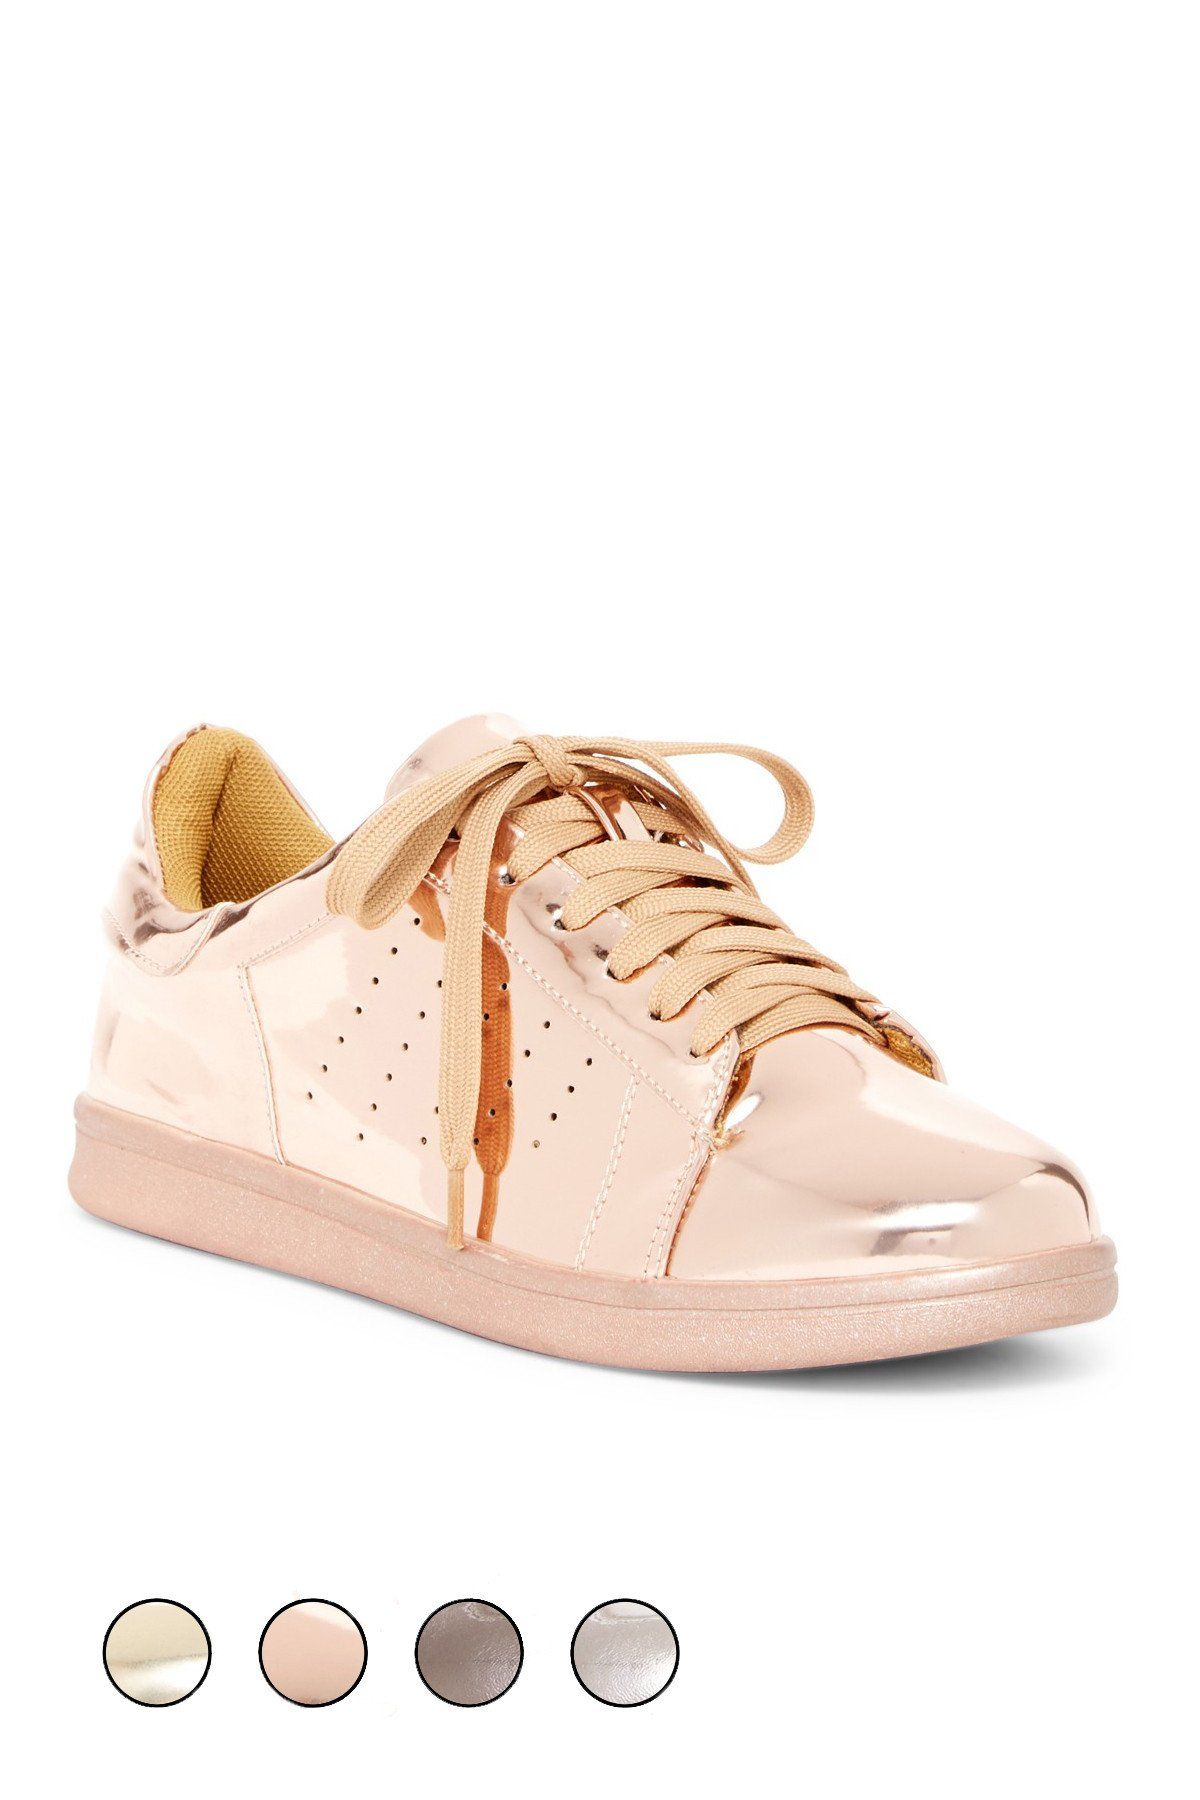 Hensely Rose Gold Sneakers In 2020 Metallic Sneakers Rose Gold Sneakers Nike Air Shoes